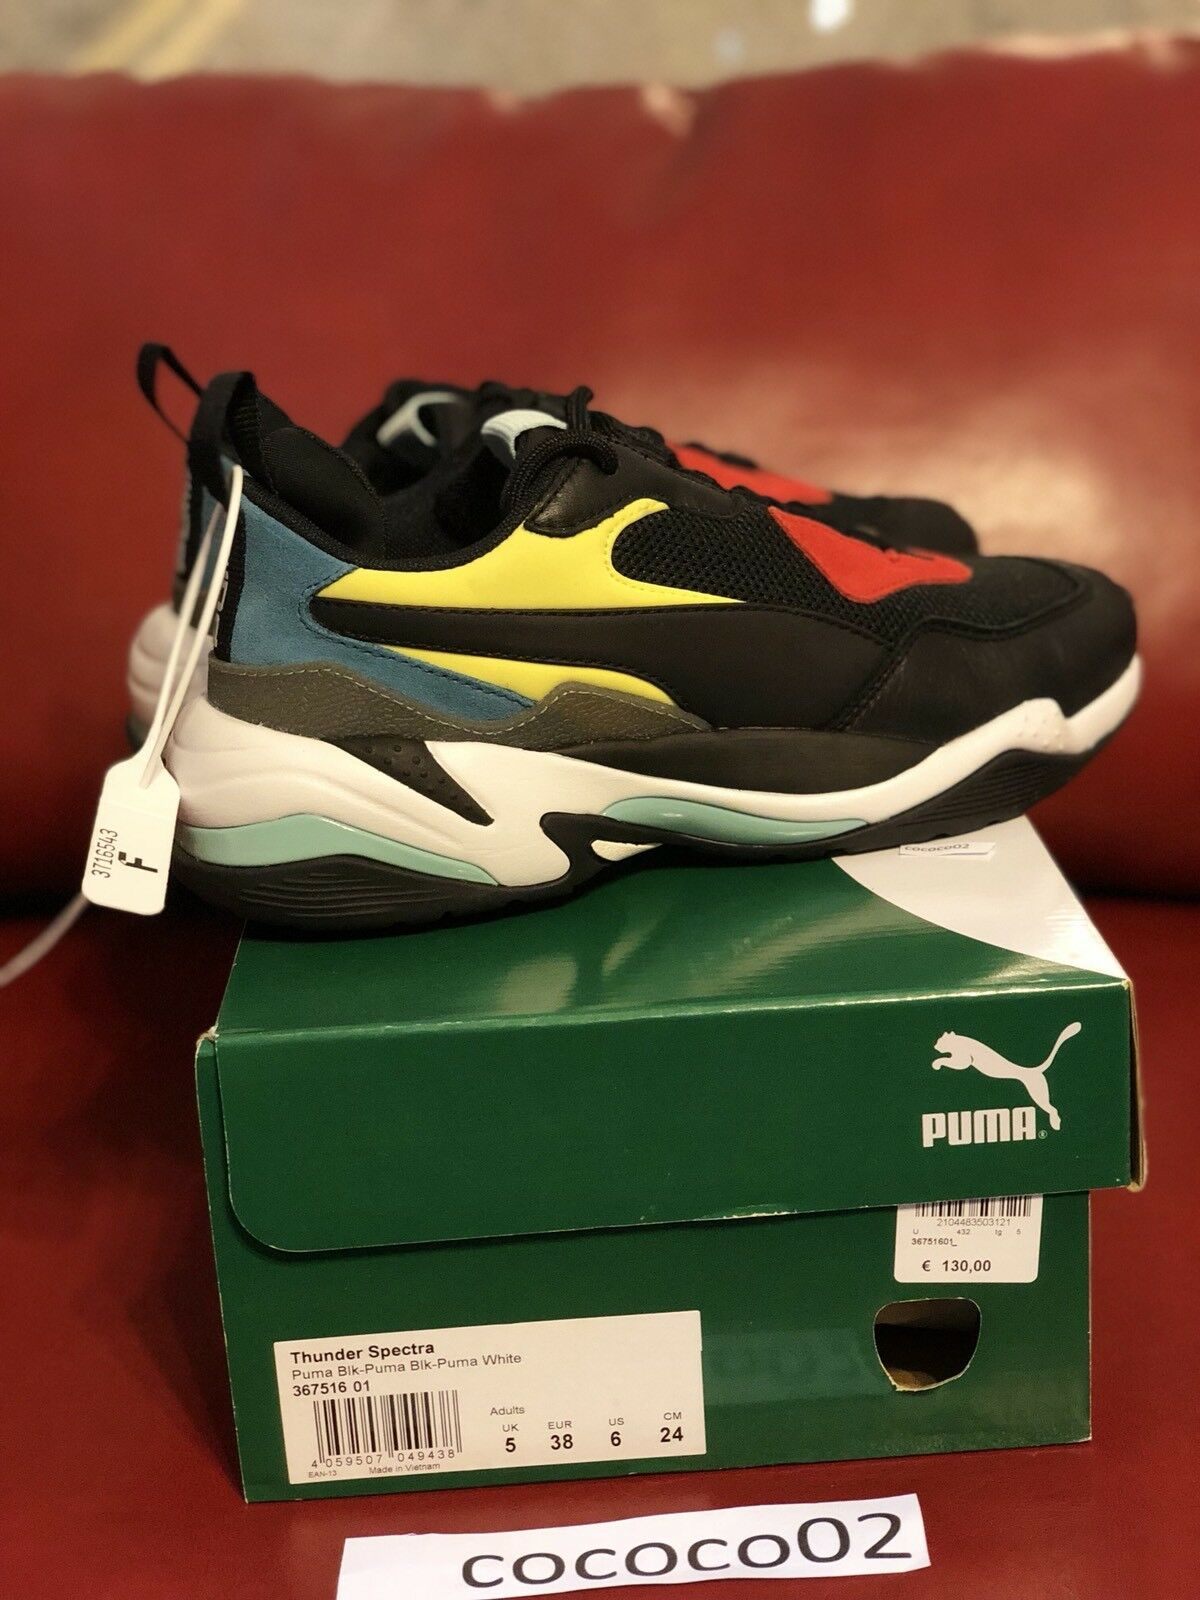 Puma Thunder Spectra 367516-01 US SIZE 6 In Hand Ready To Ship!